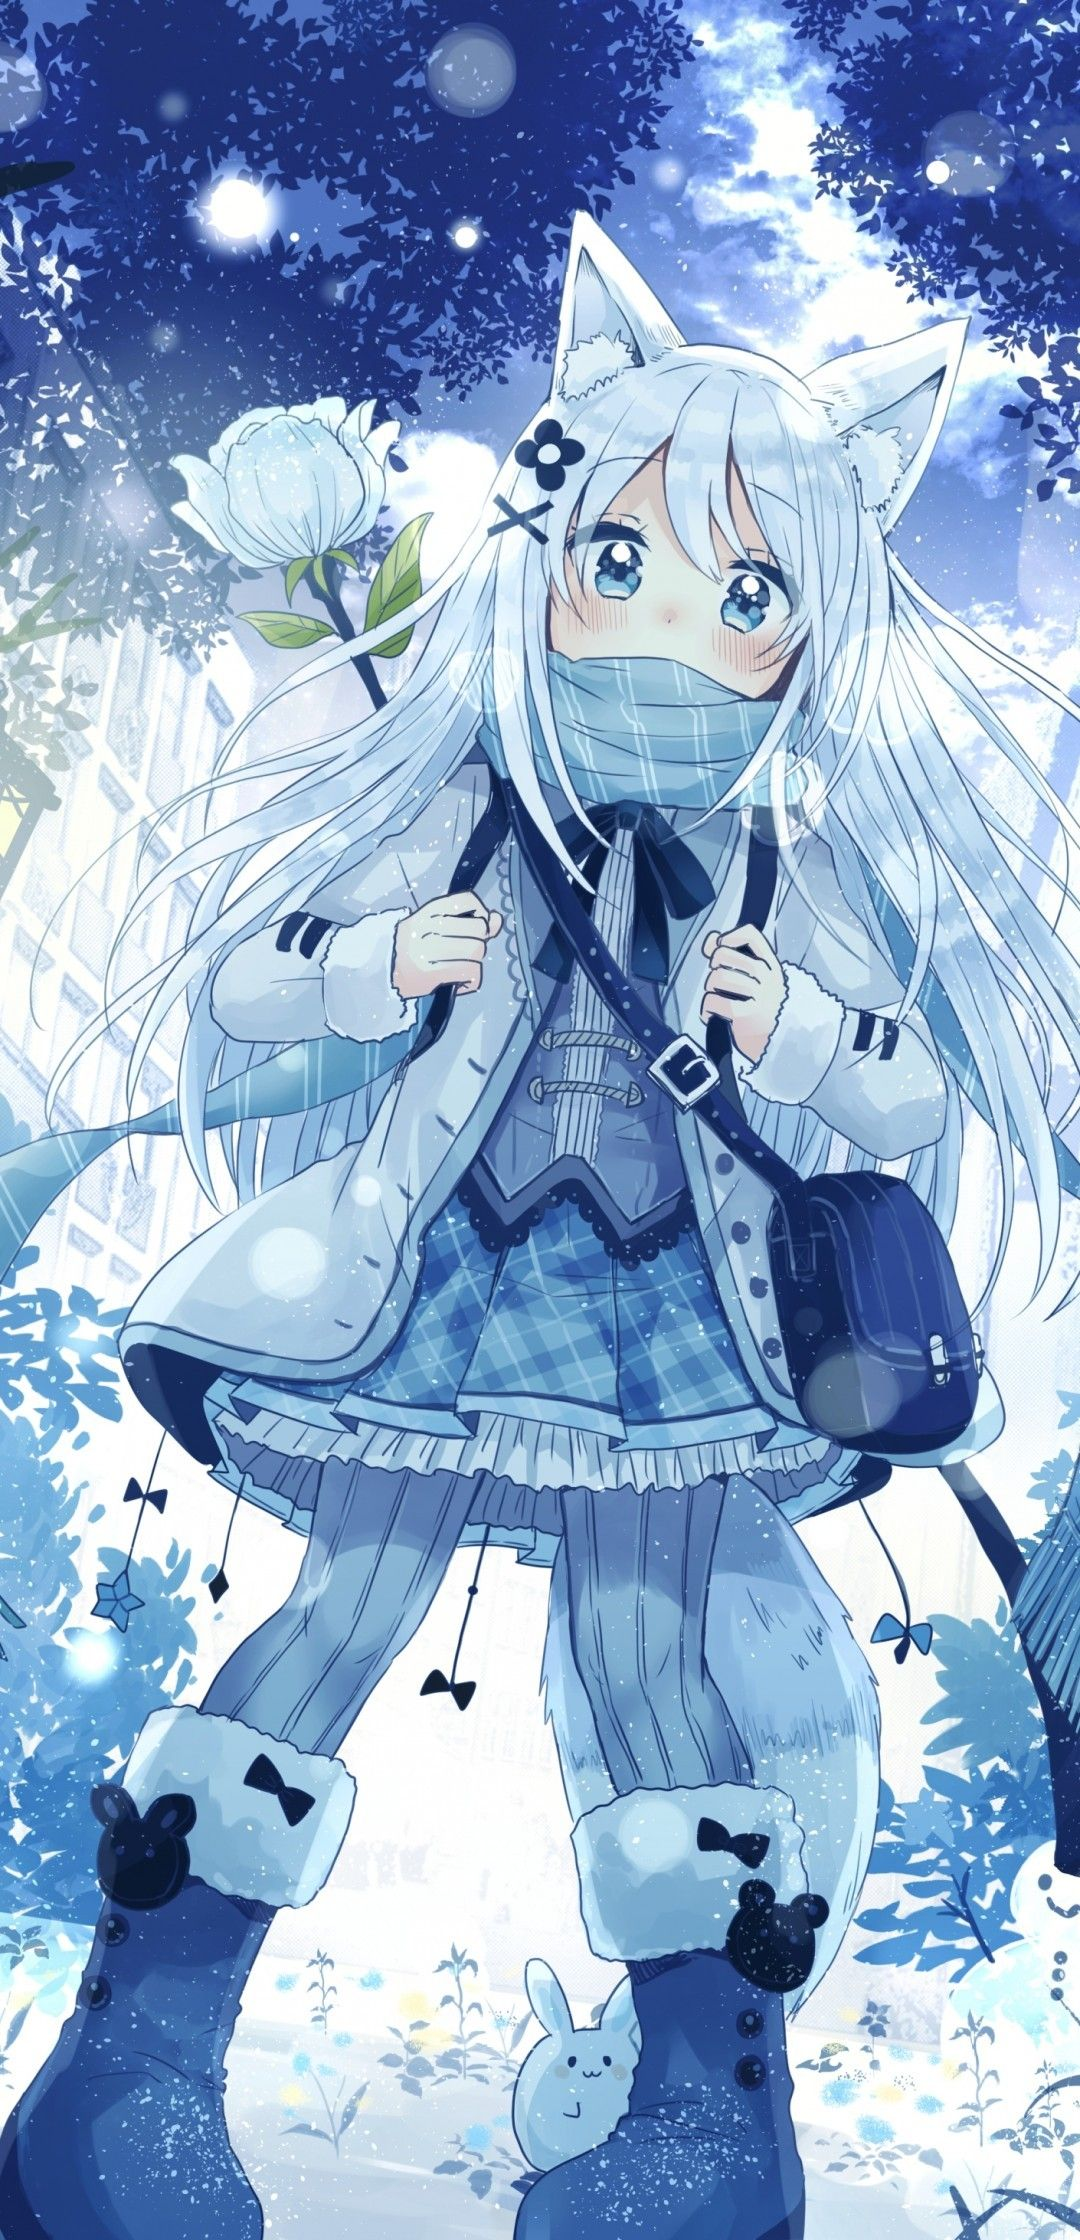 Anime Winter Girls Wallpapers - Wallpaper Cave